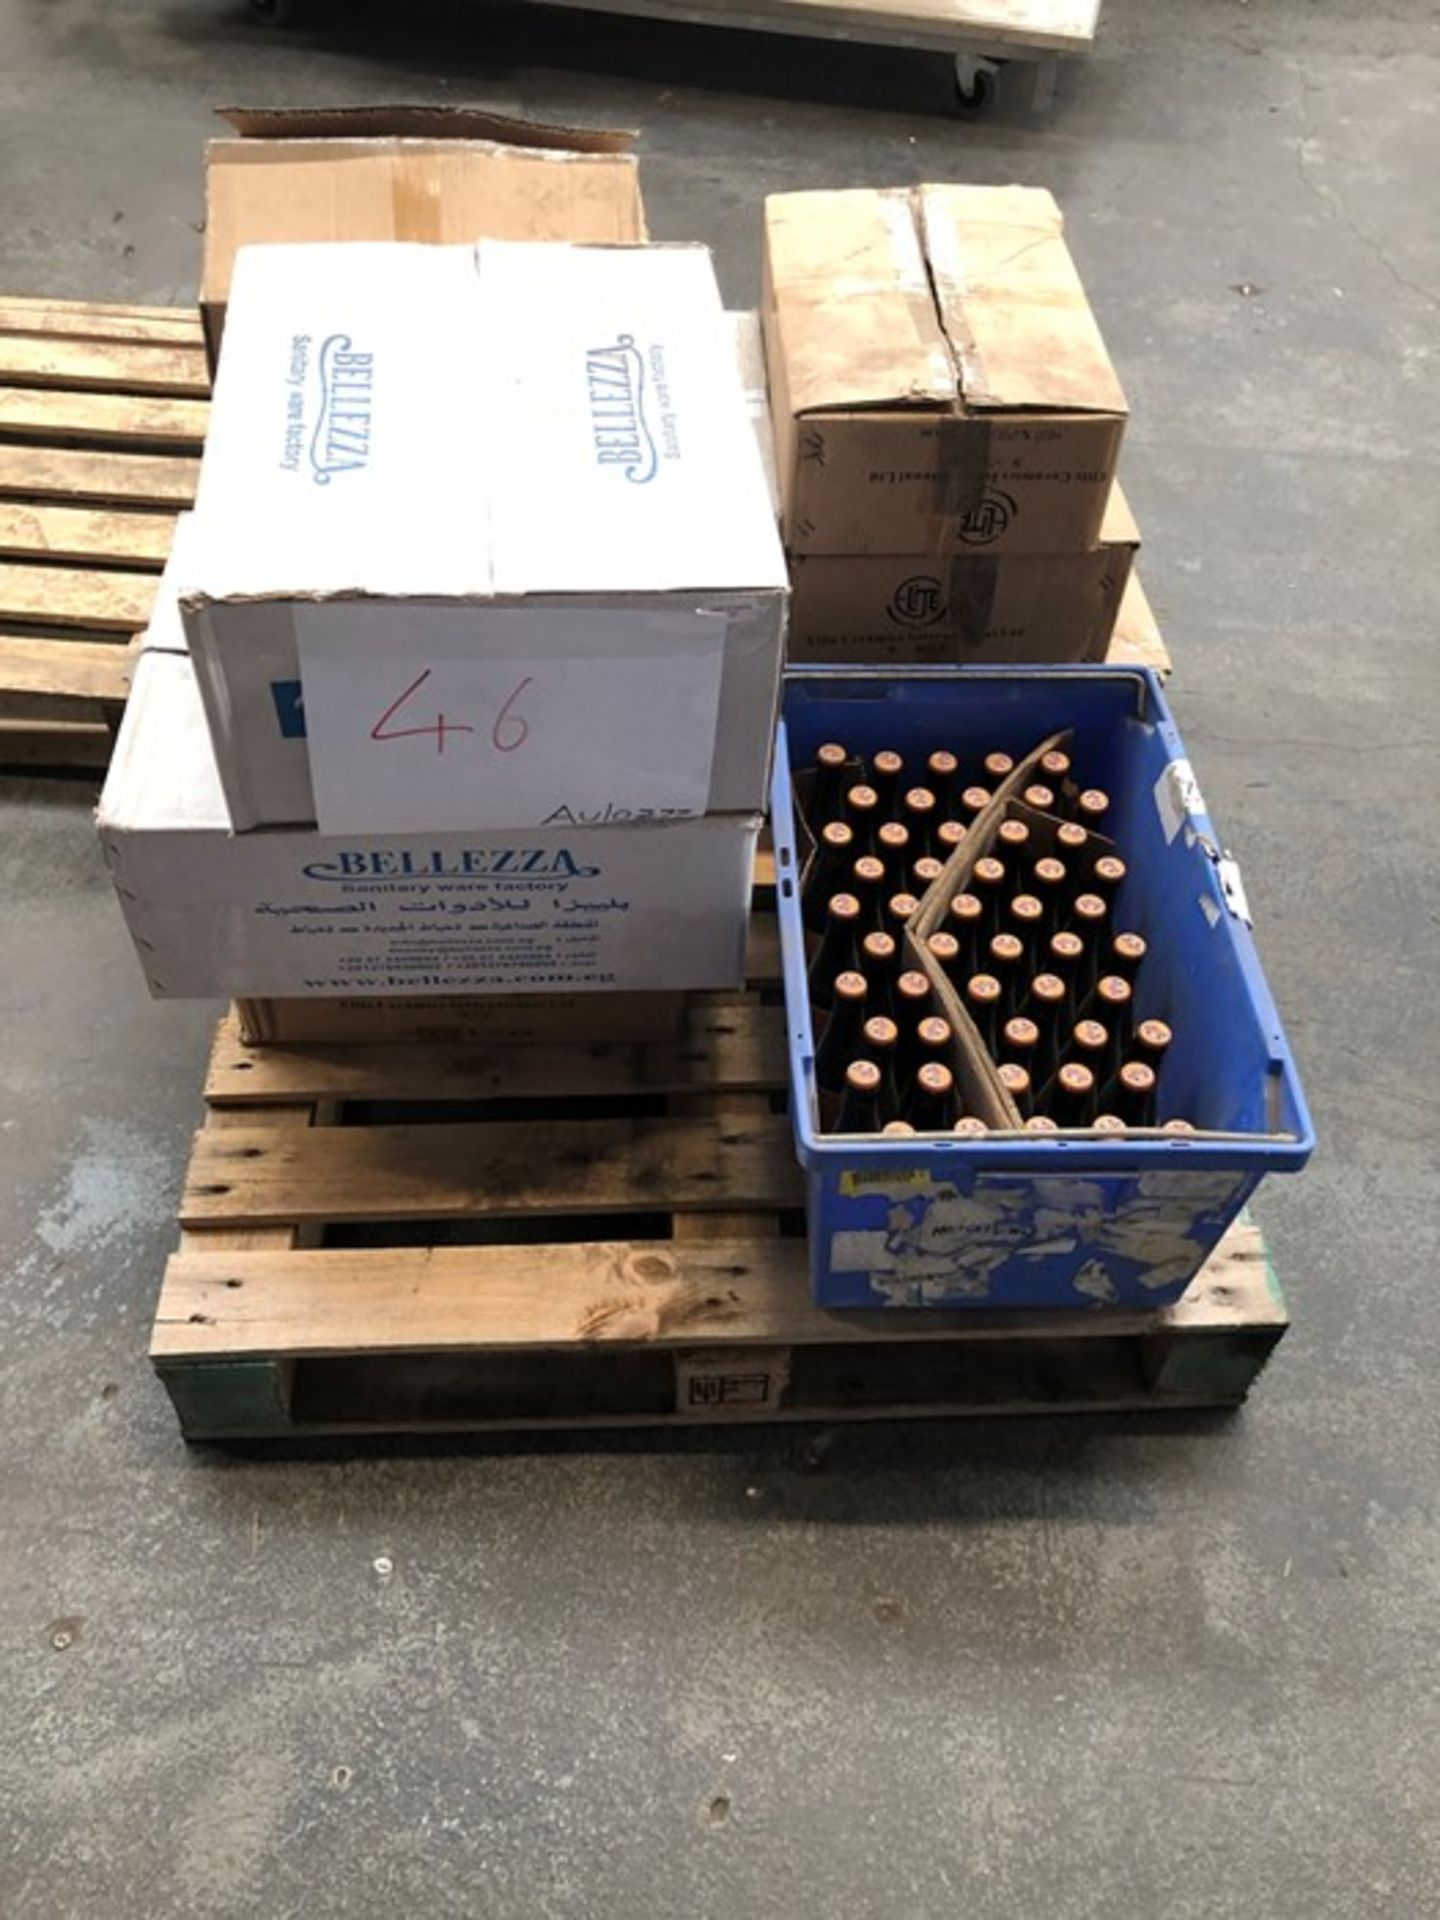 Lot 36 - 1 LOT TO CONTAIN ASSORTED CERAMIC SINKS AND SNUFFLE CHICKEN FLAVOURED DOG BEER (PUBLIC VIEWING